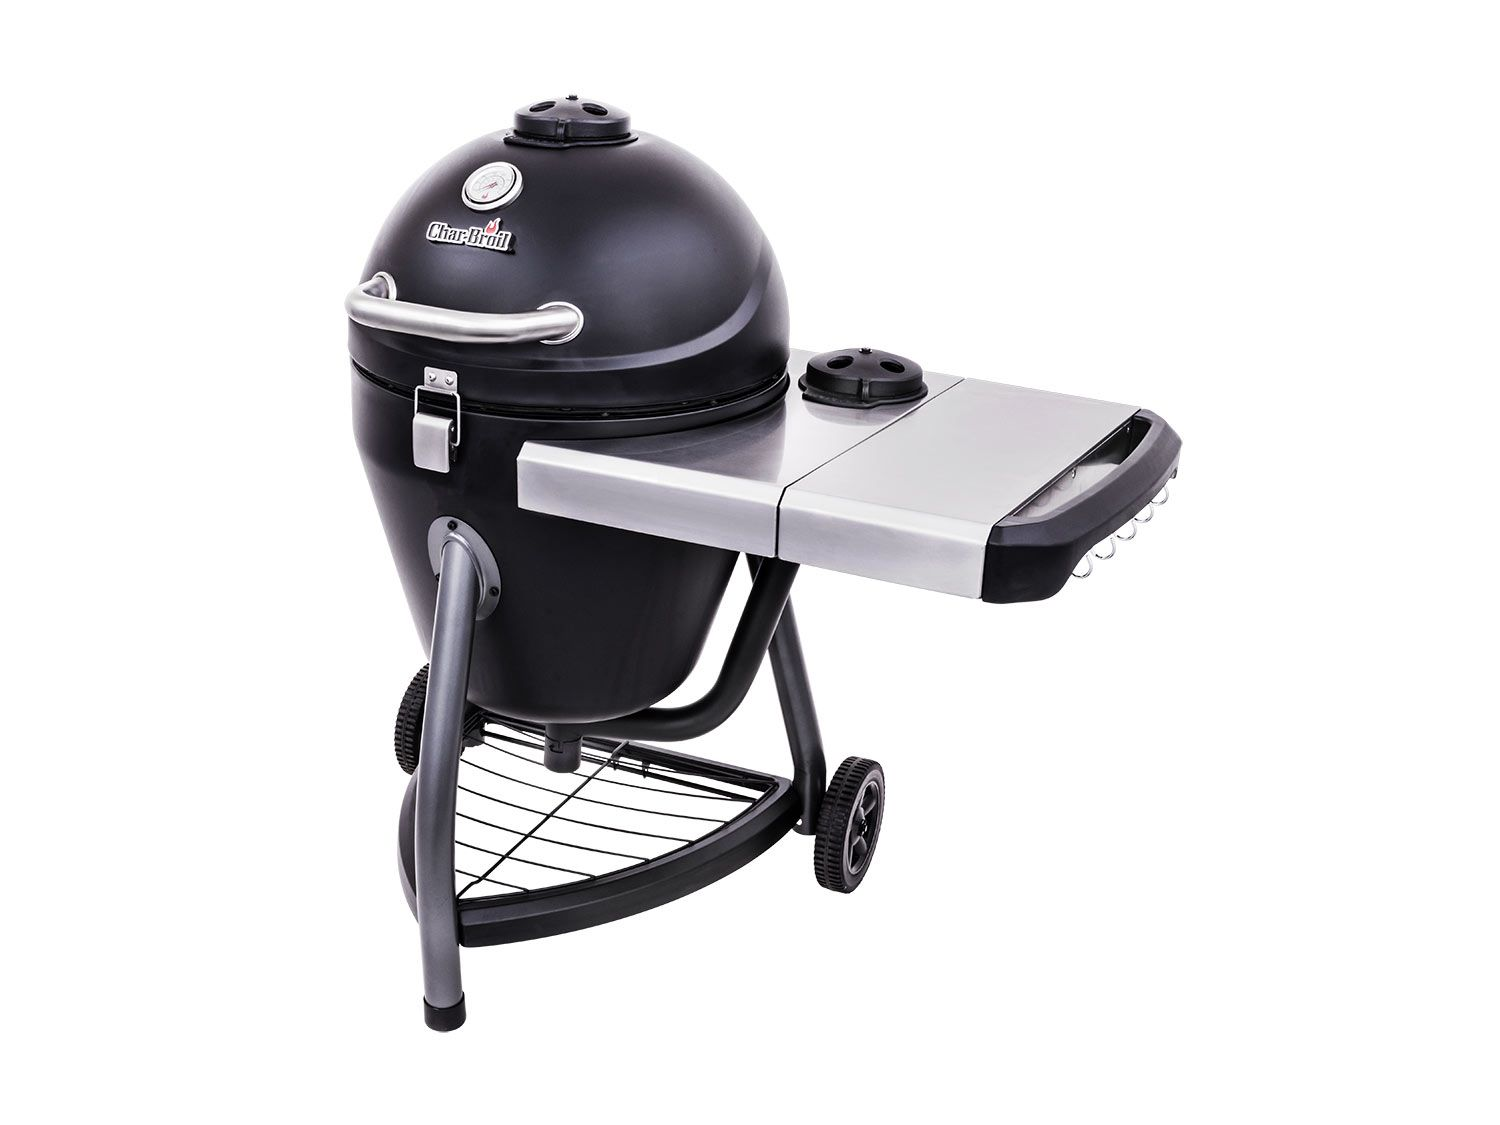 The Char-Broil Kamander Charcoal Grill, a medium-sized, low-priced kamado cooker